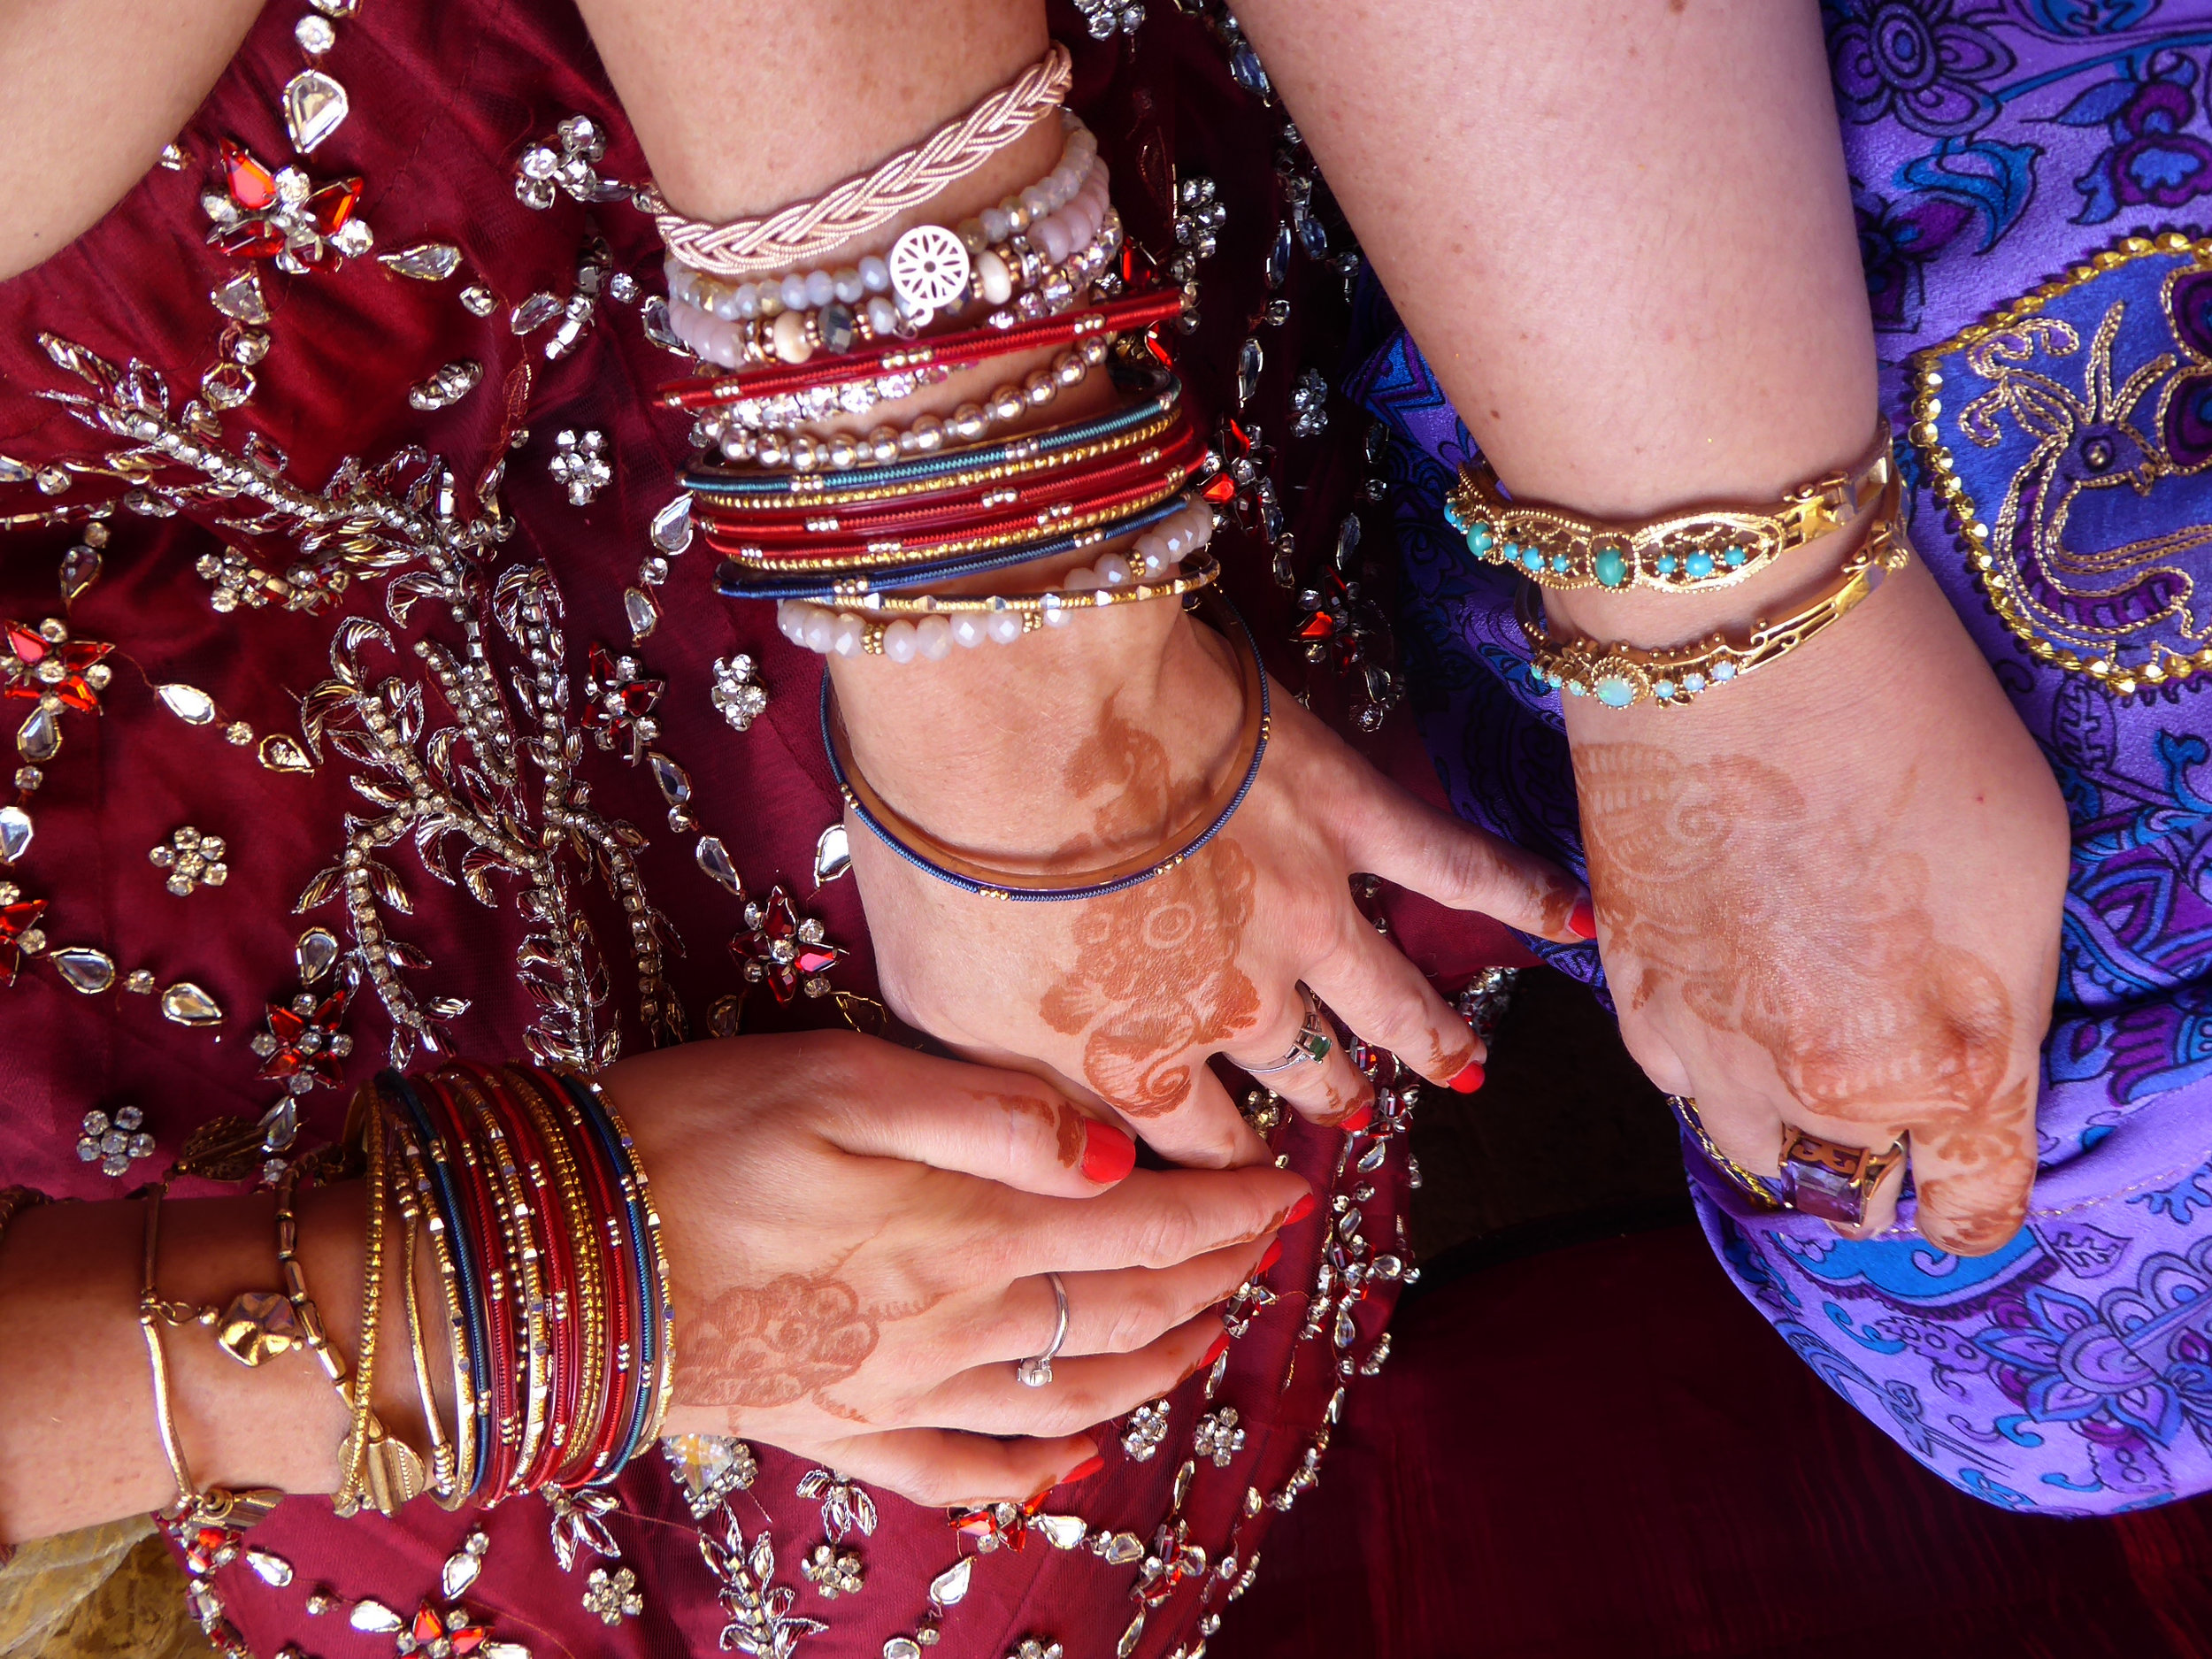 Henna and bangles galore! I loved all of the sequins and embellishments on everyone's wedding attire.